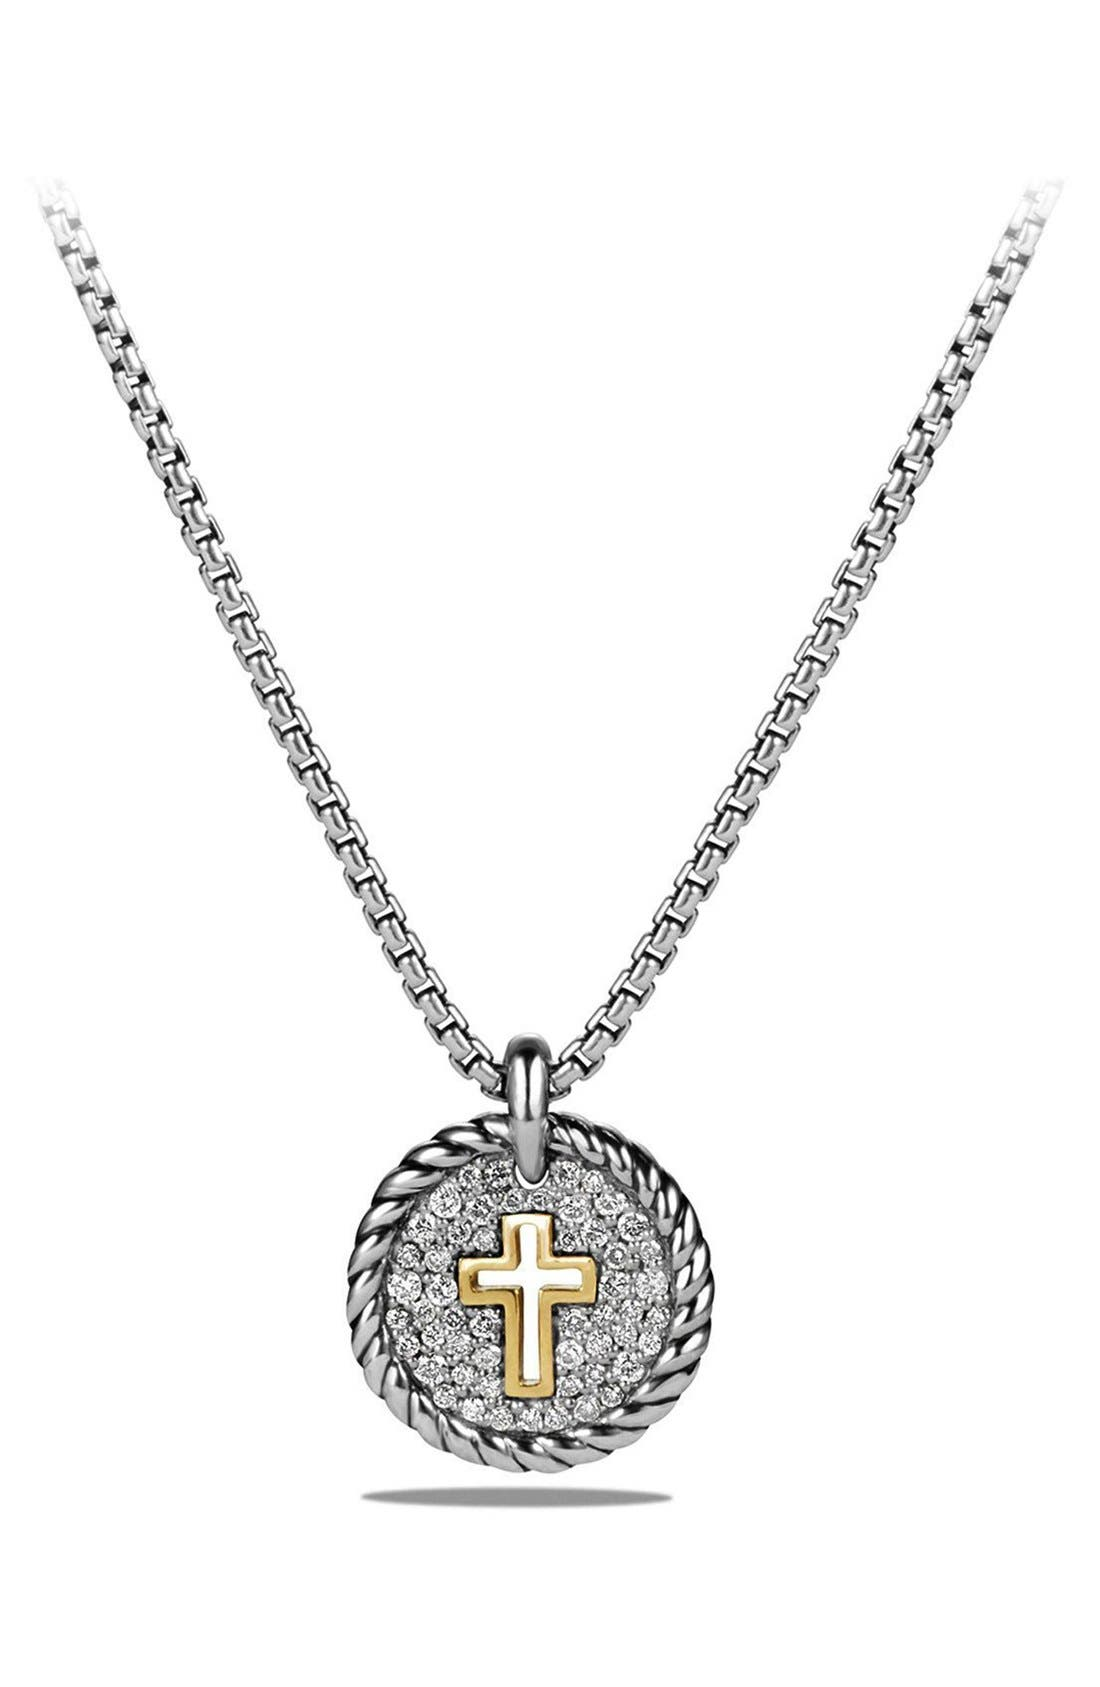 Main Image - David Yurman 'Cable Collectibles' Cross Charm Necklace with Diamonds & 18K Gold